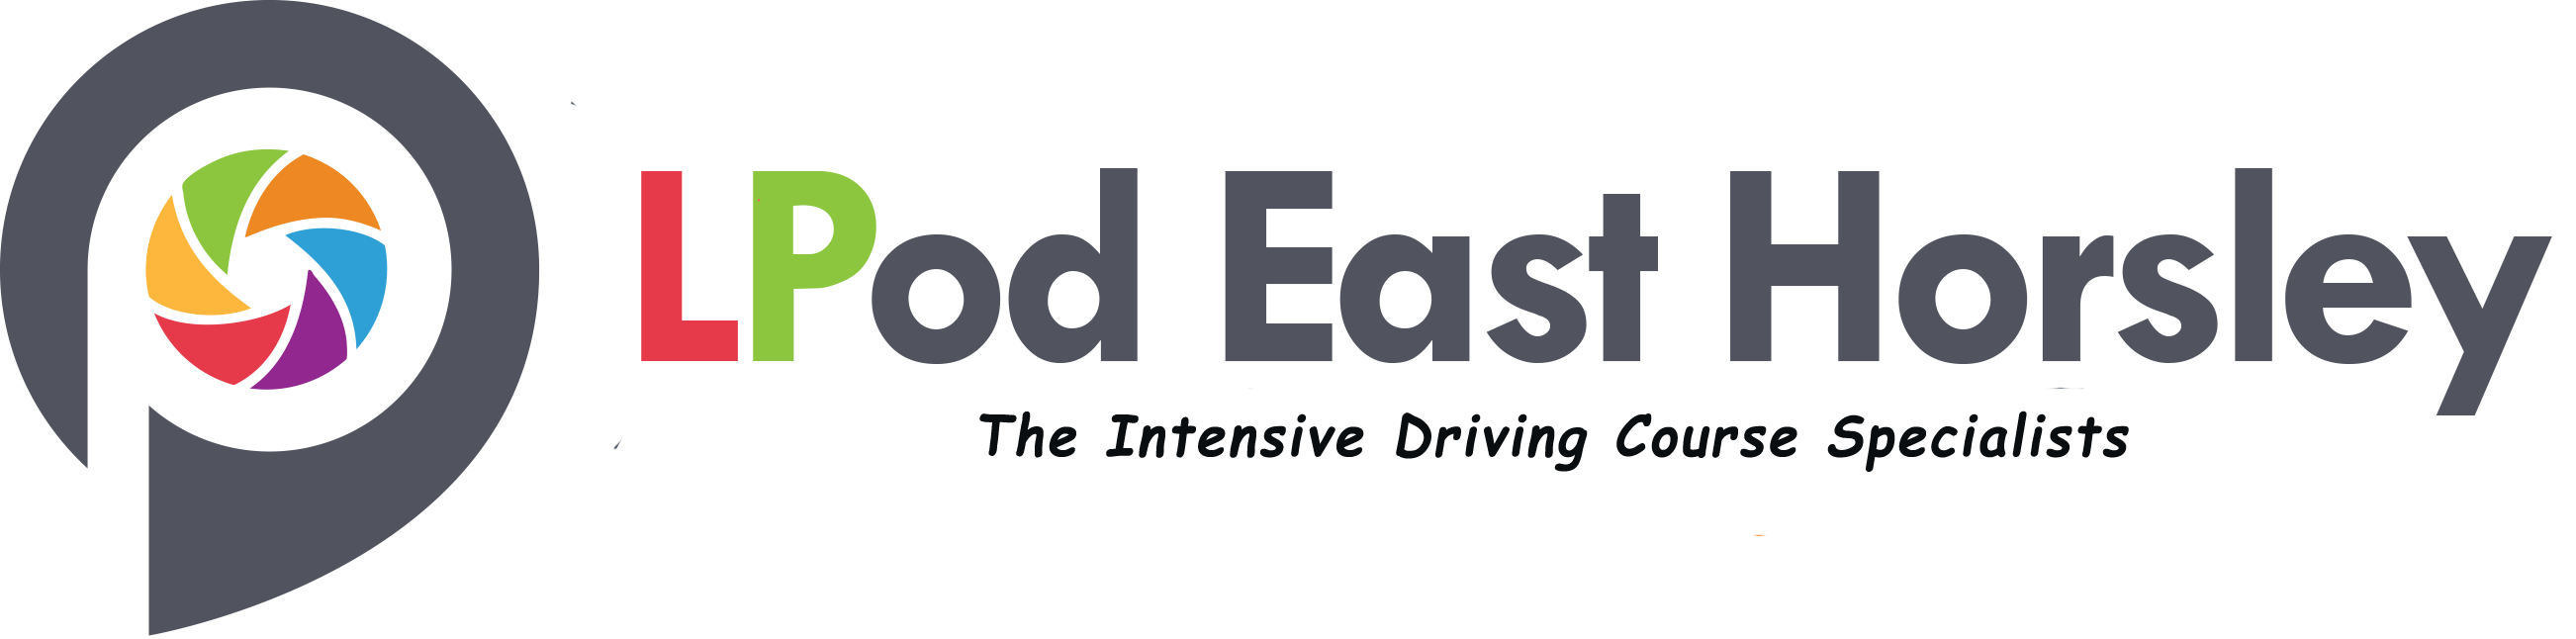 intensive driving courses east horsley, one week driving courses east horsley, crash driving courses horsley